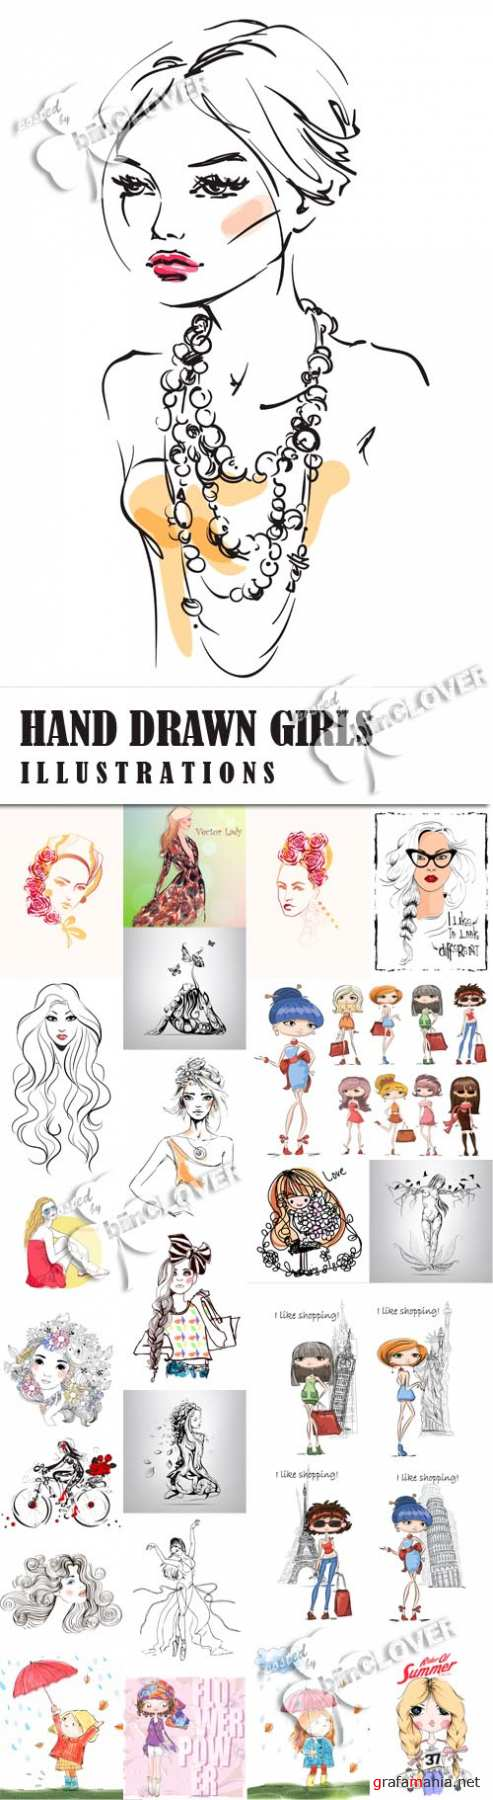 Hand drawn girl illustrations 0586